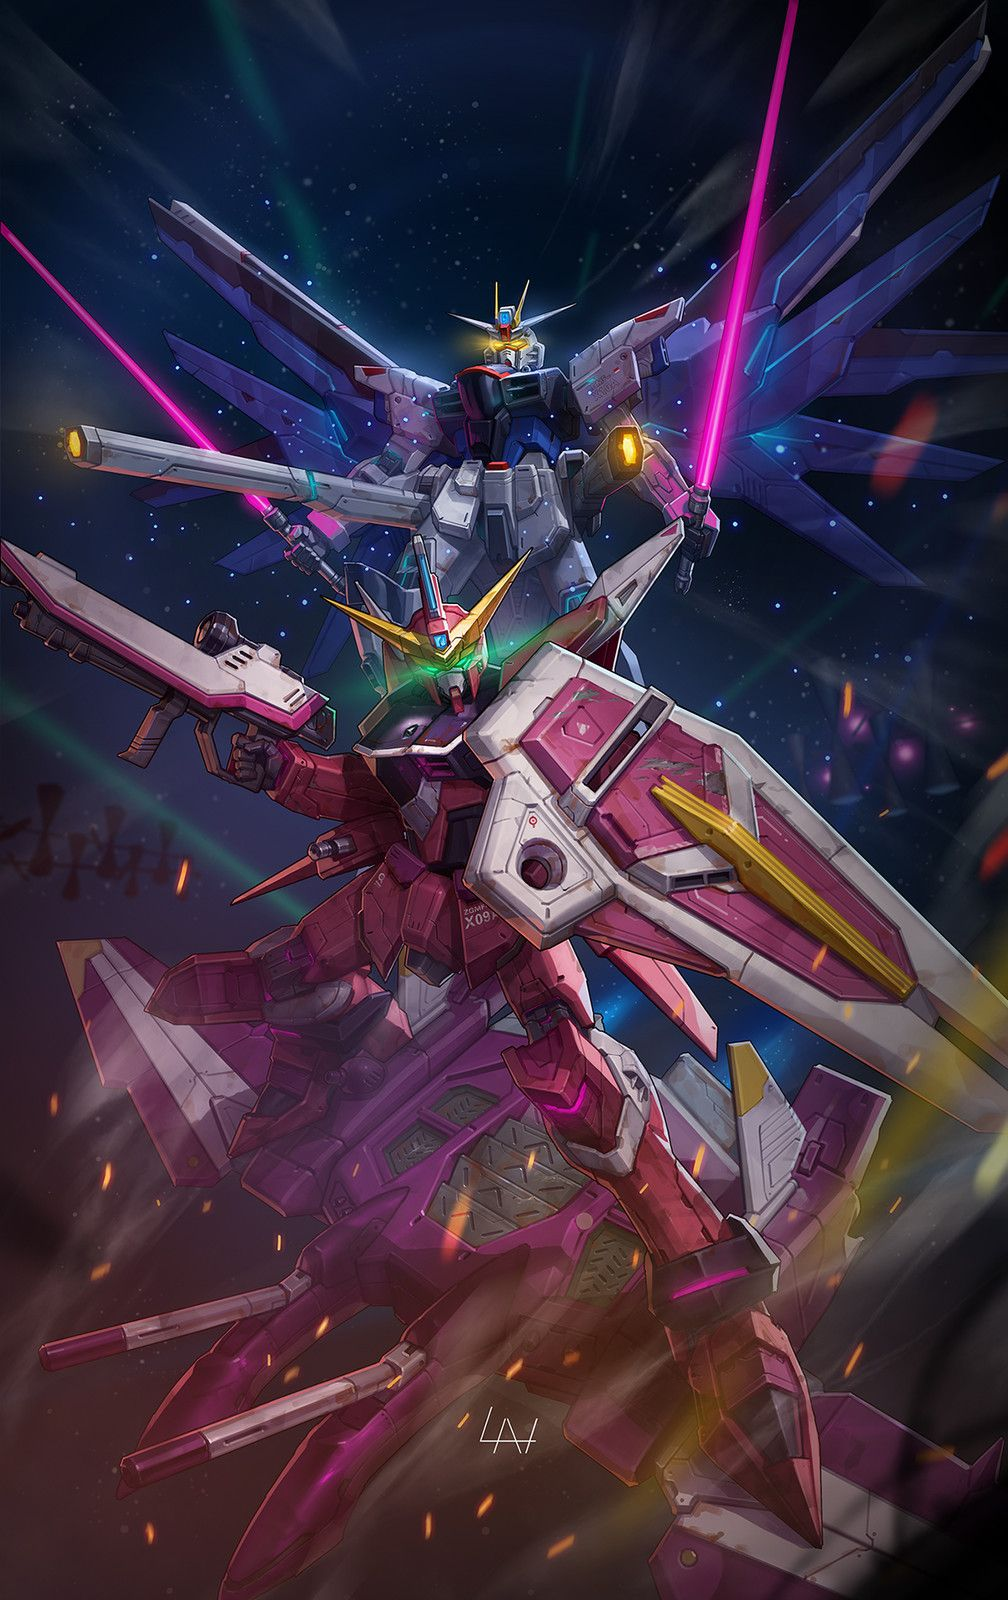 Freedom X Justice Gundam Fans Art Lan On Artstation At Https Www Artstation Com Artwork 1r4bo With Images Gundam Wallpapers Gundam Gundam Art